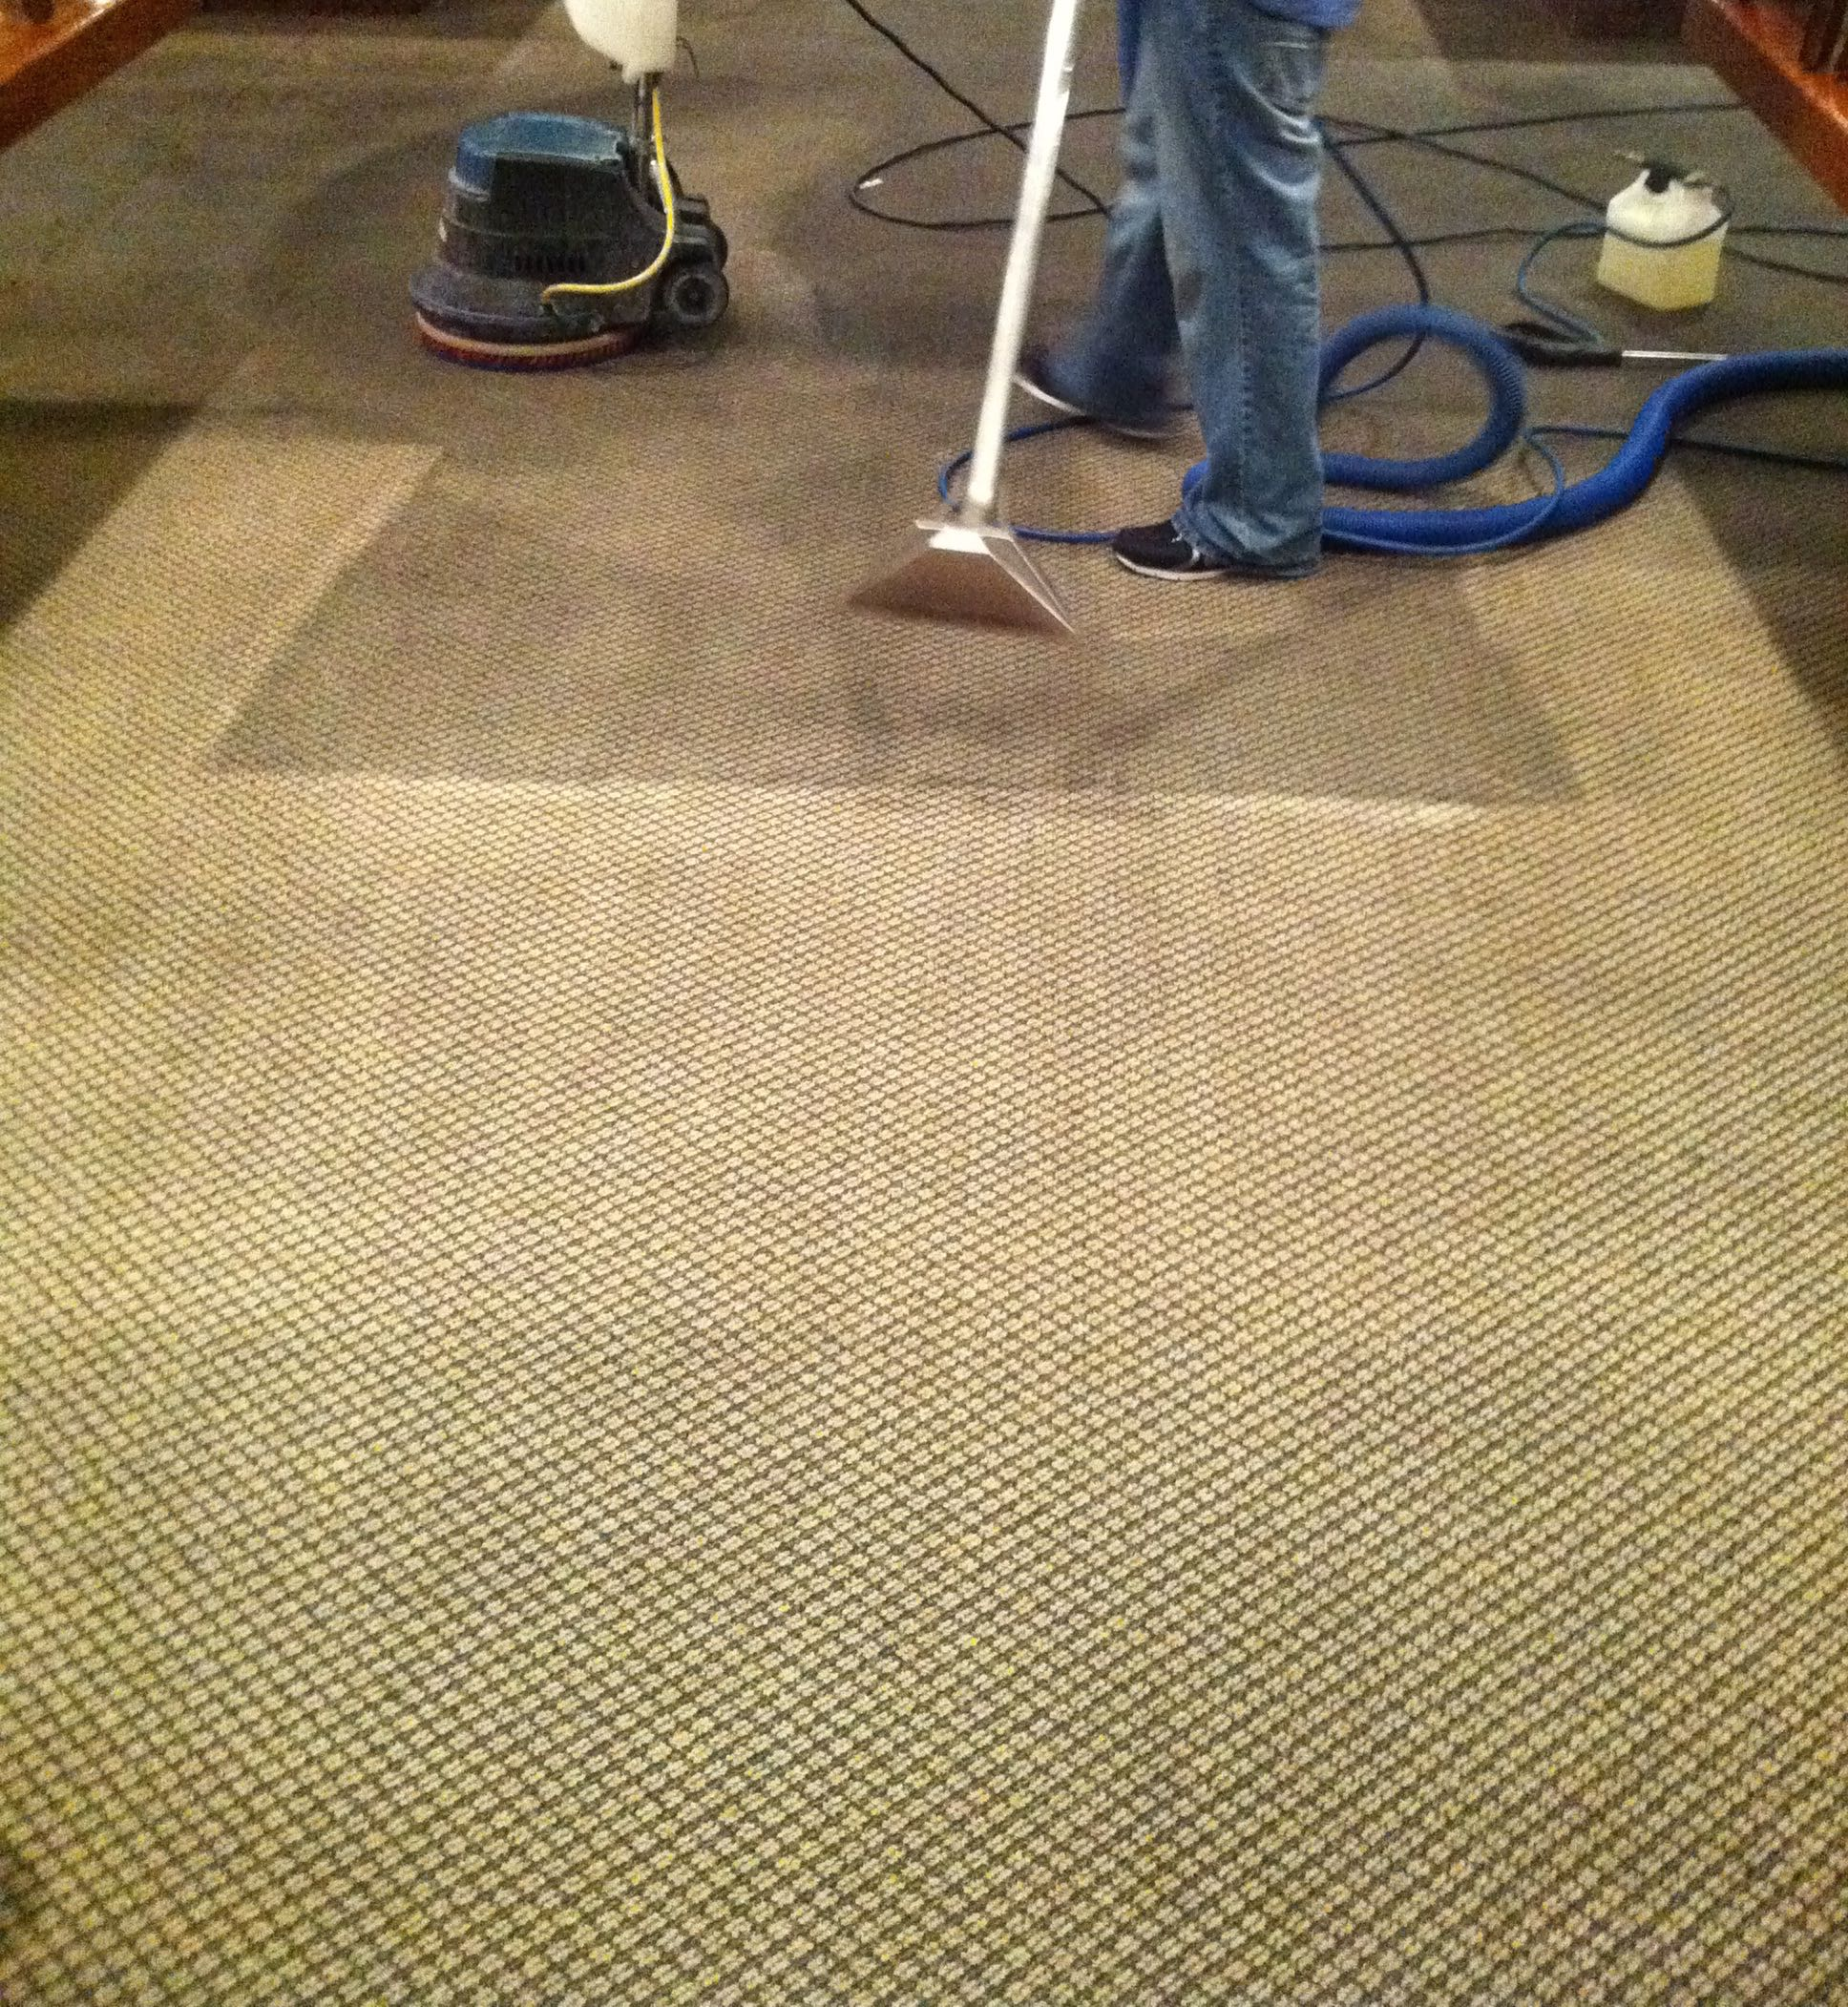 commercial carpet cleaning before after dr